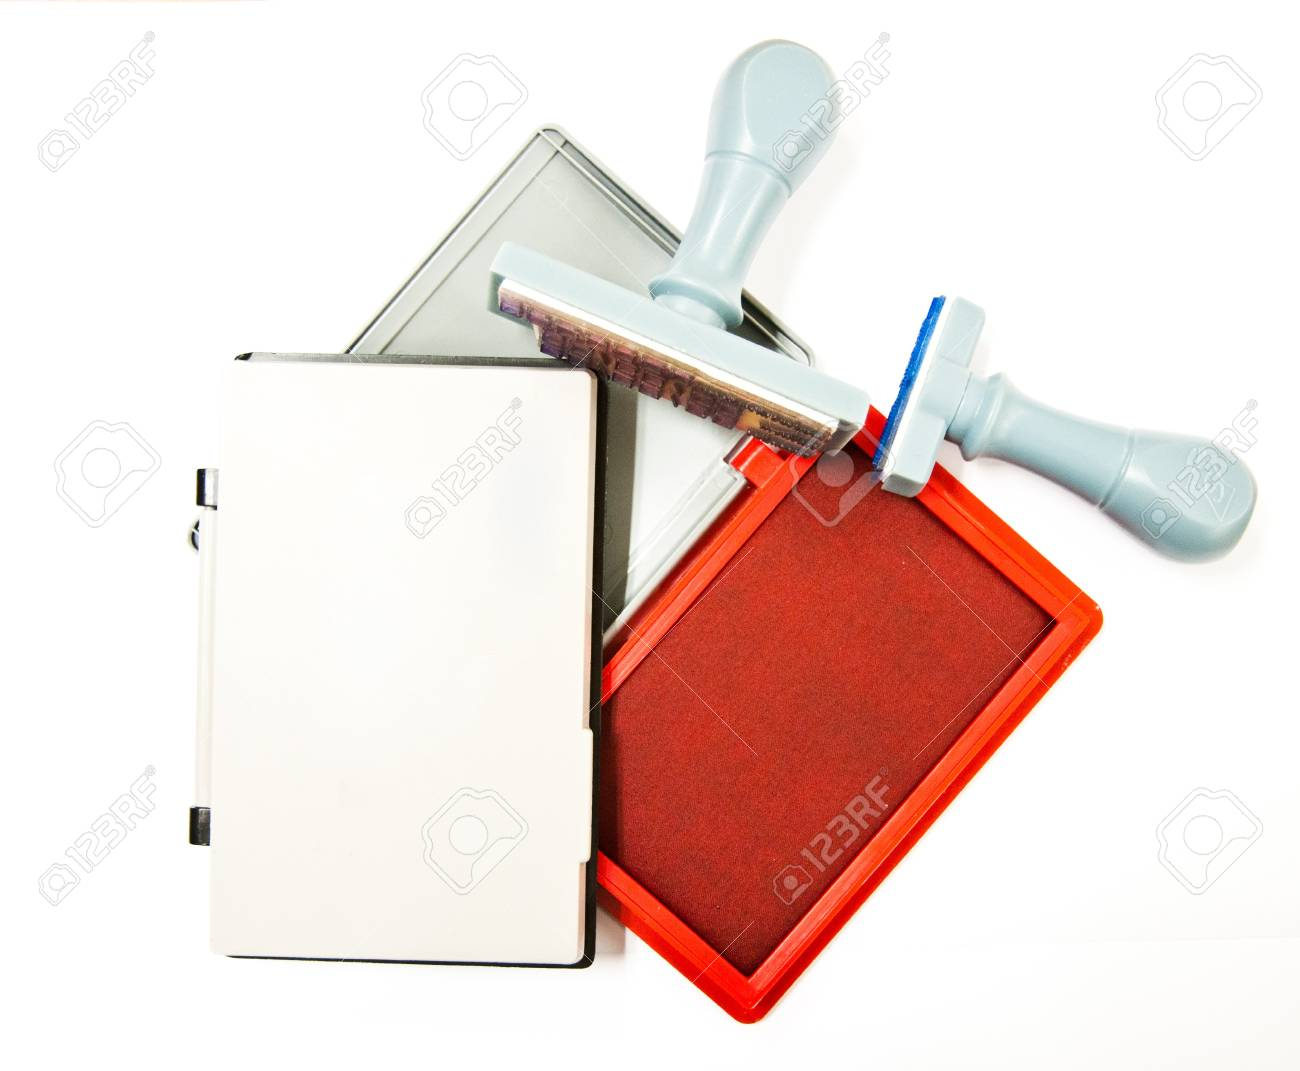 ink for stamp, the equipment for using in office Stock Photo - 9134420